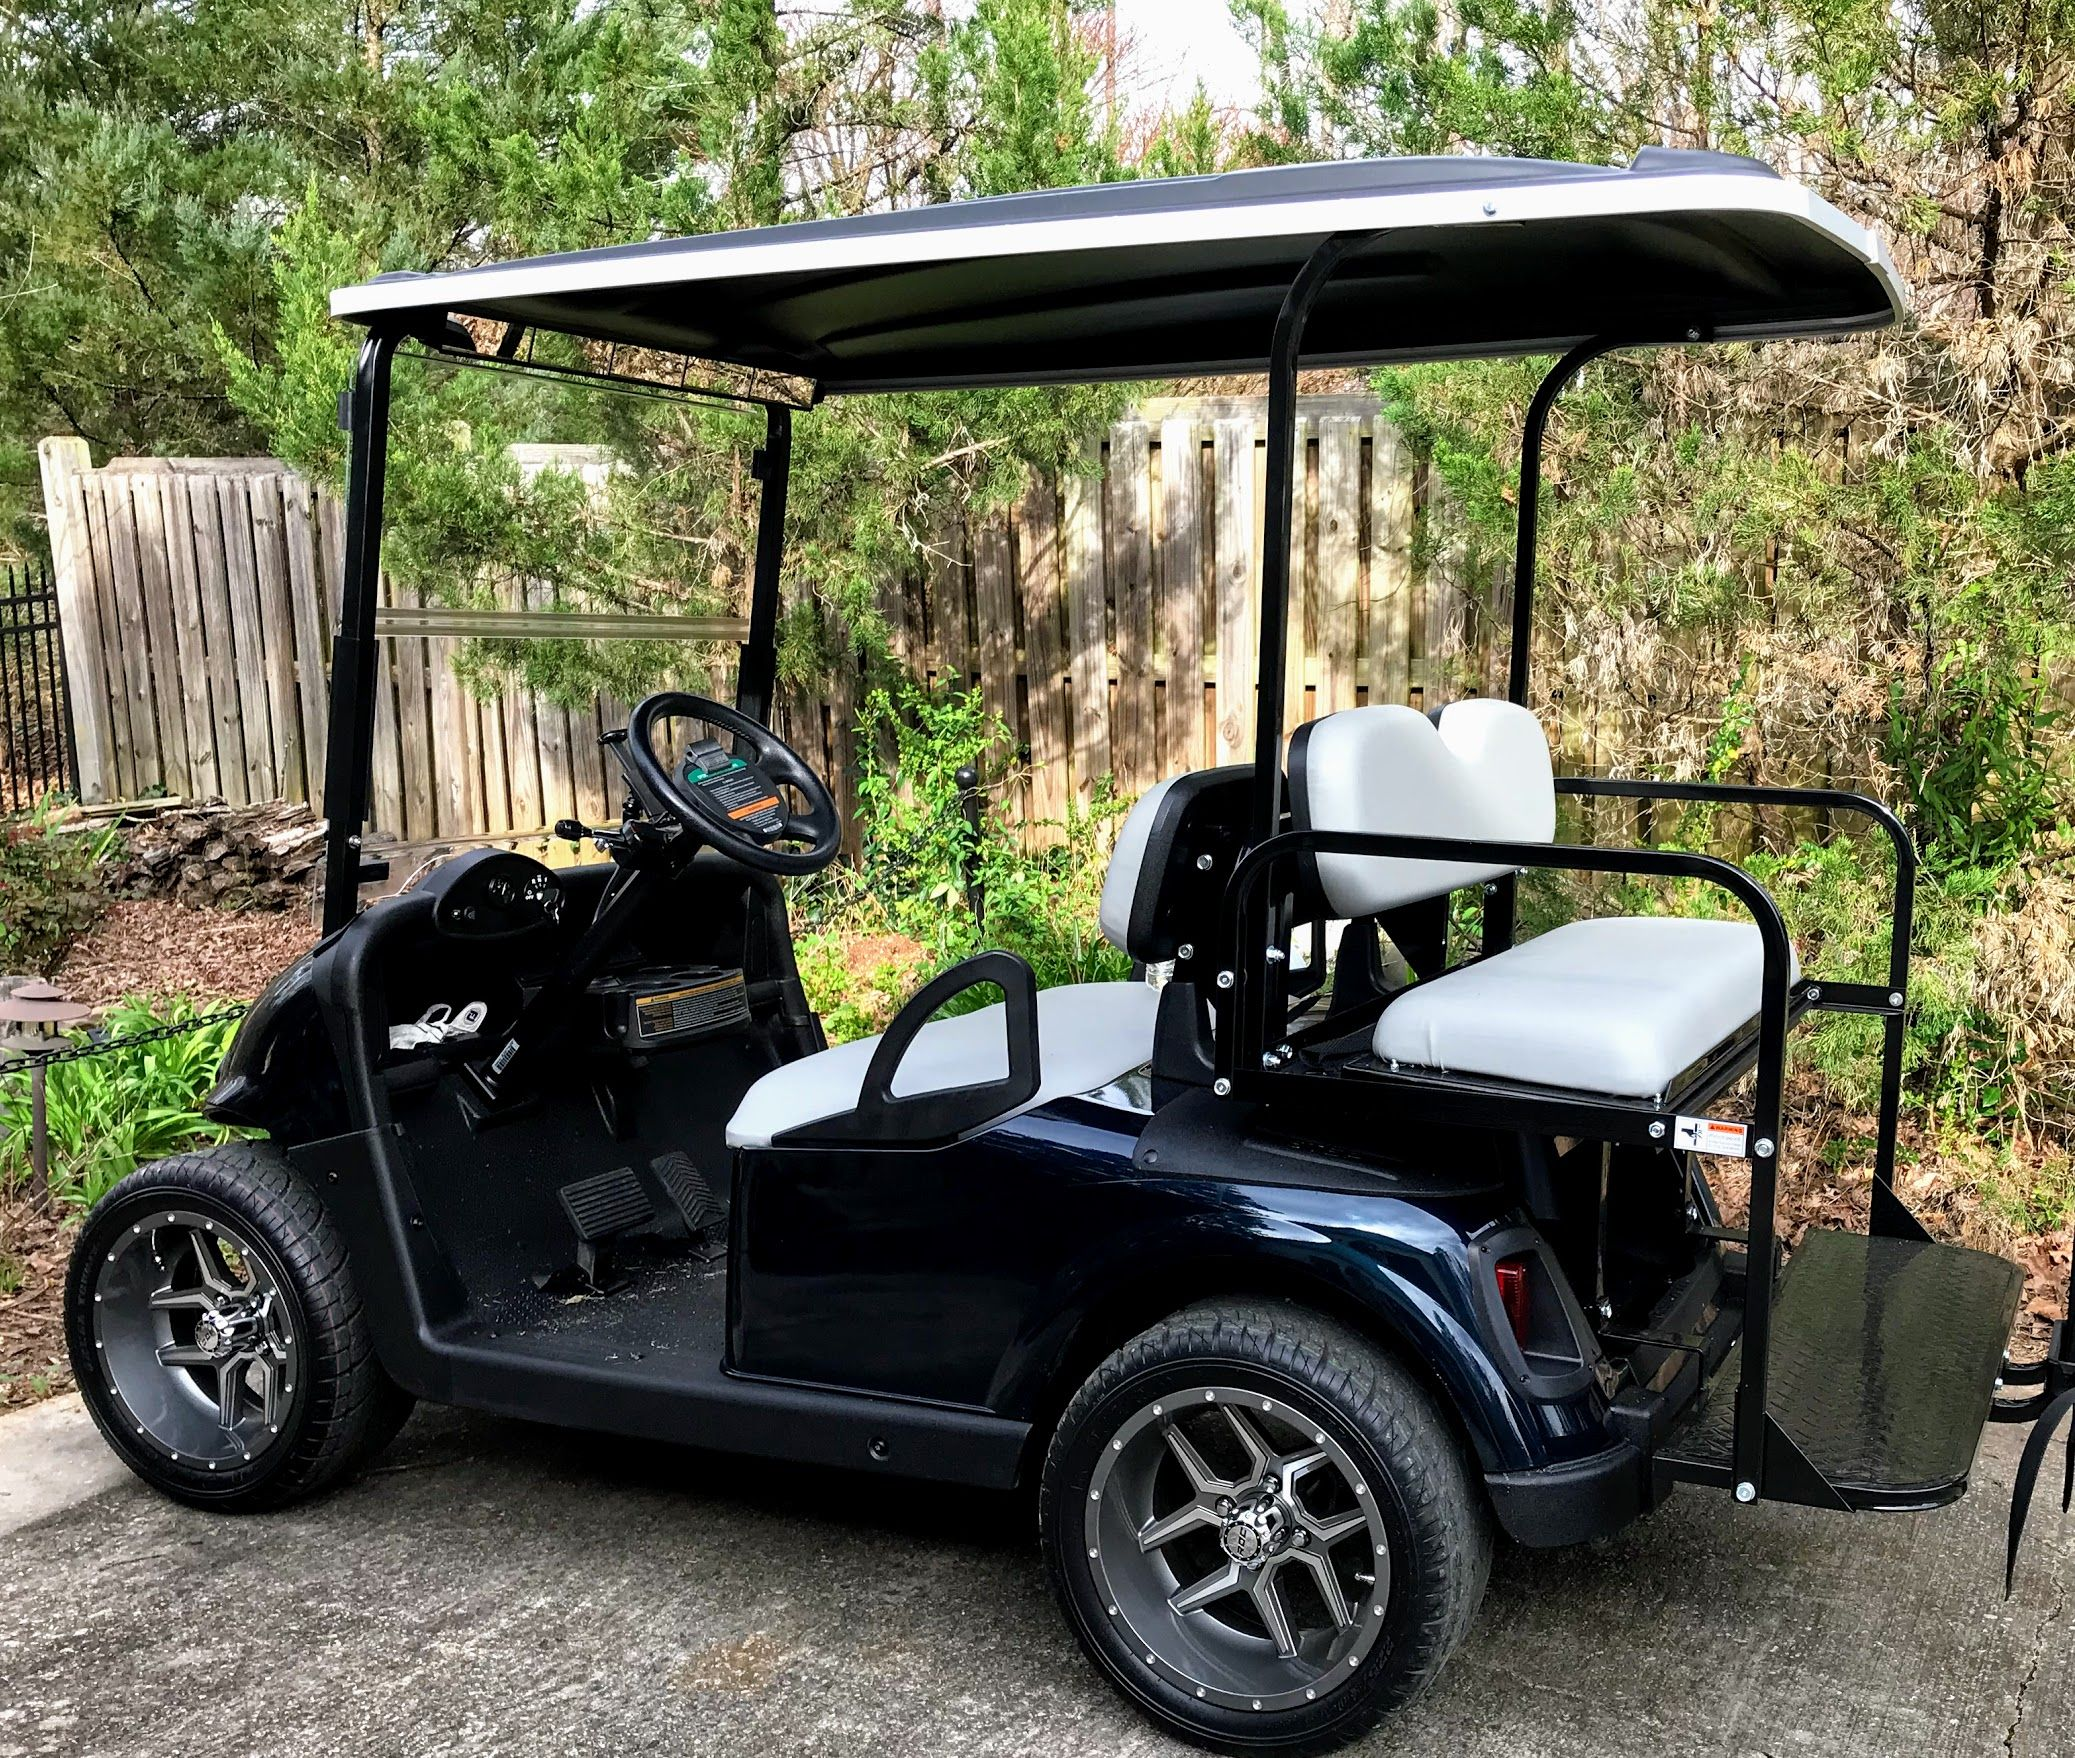 4 Seat Golf Cart Make Room For Passengers Or For Hauling Stuff Golf Carts Ezgo Golf Cart Golf Cart Seats